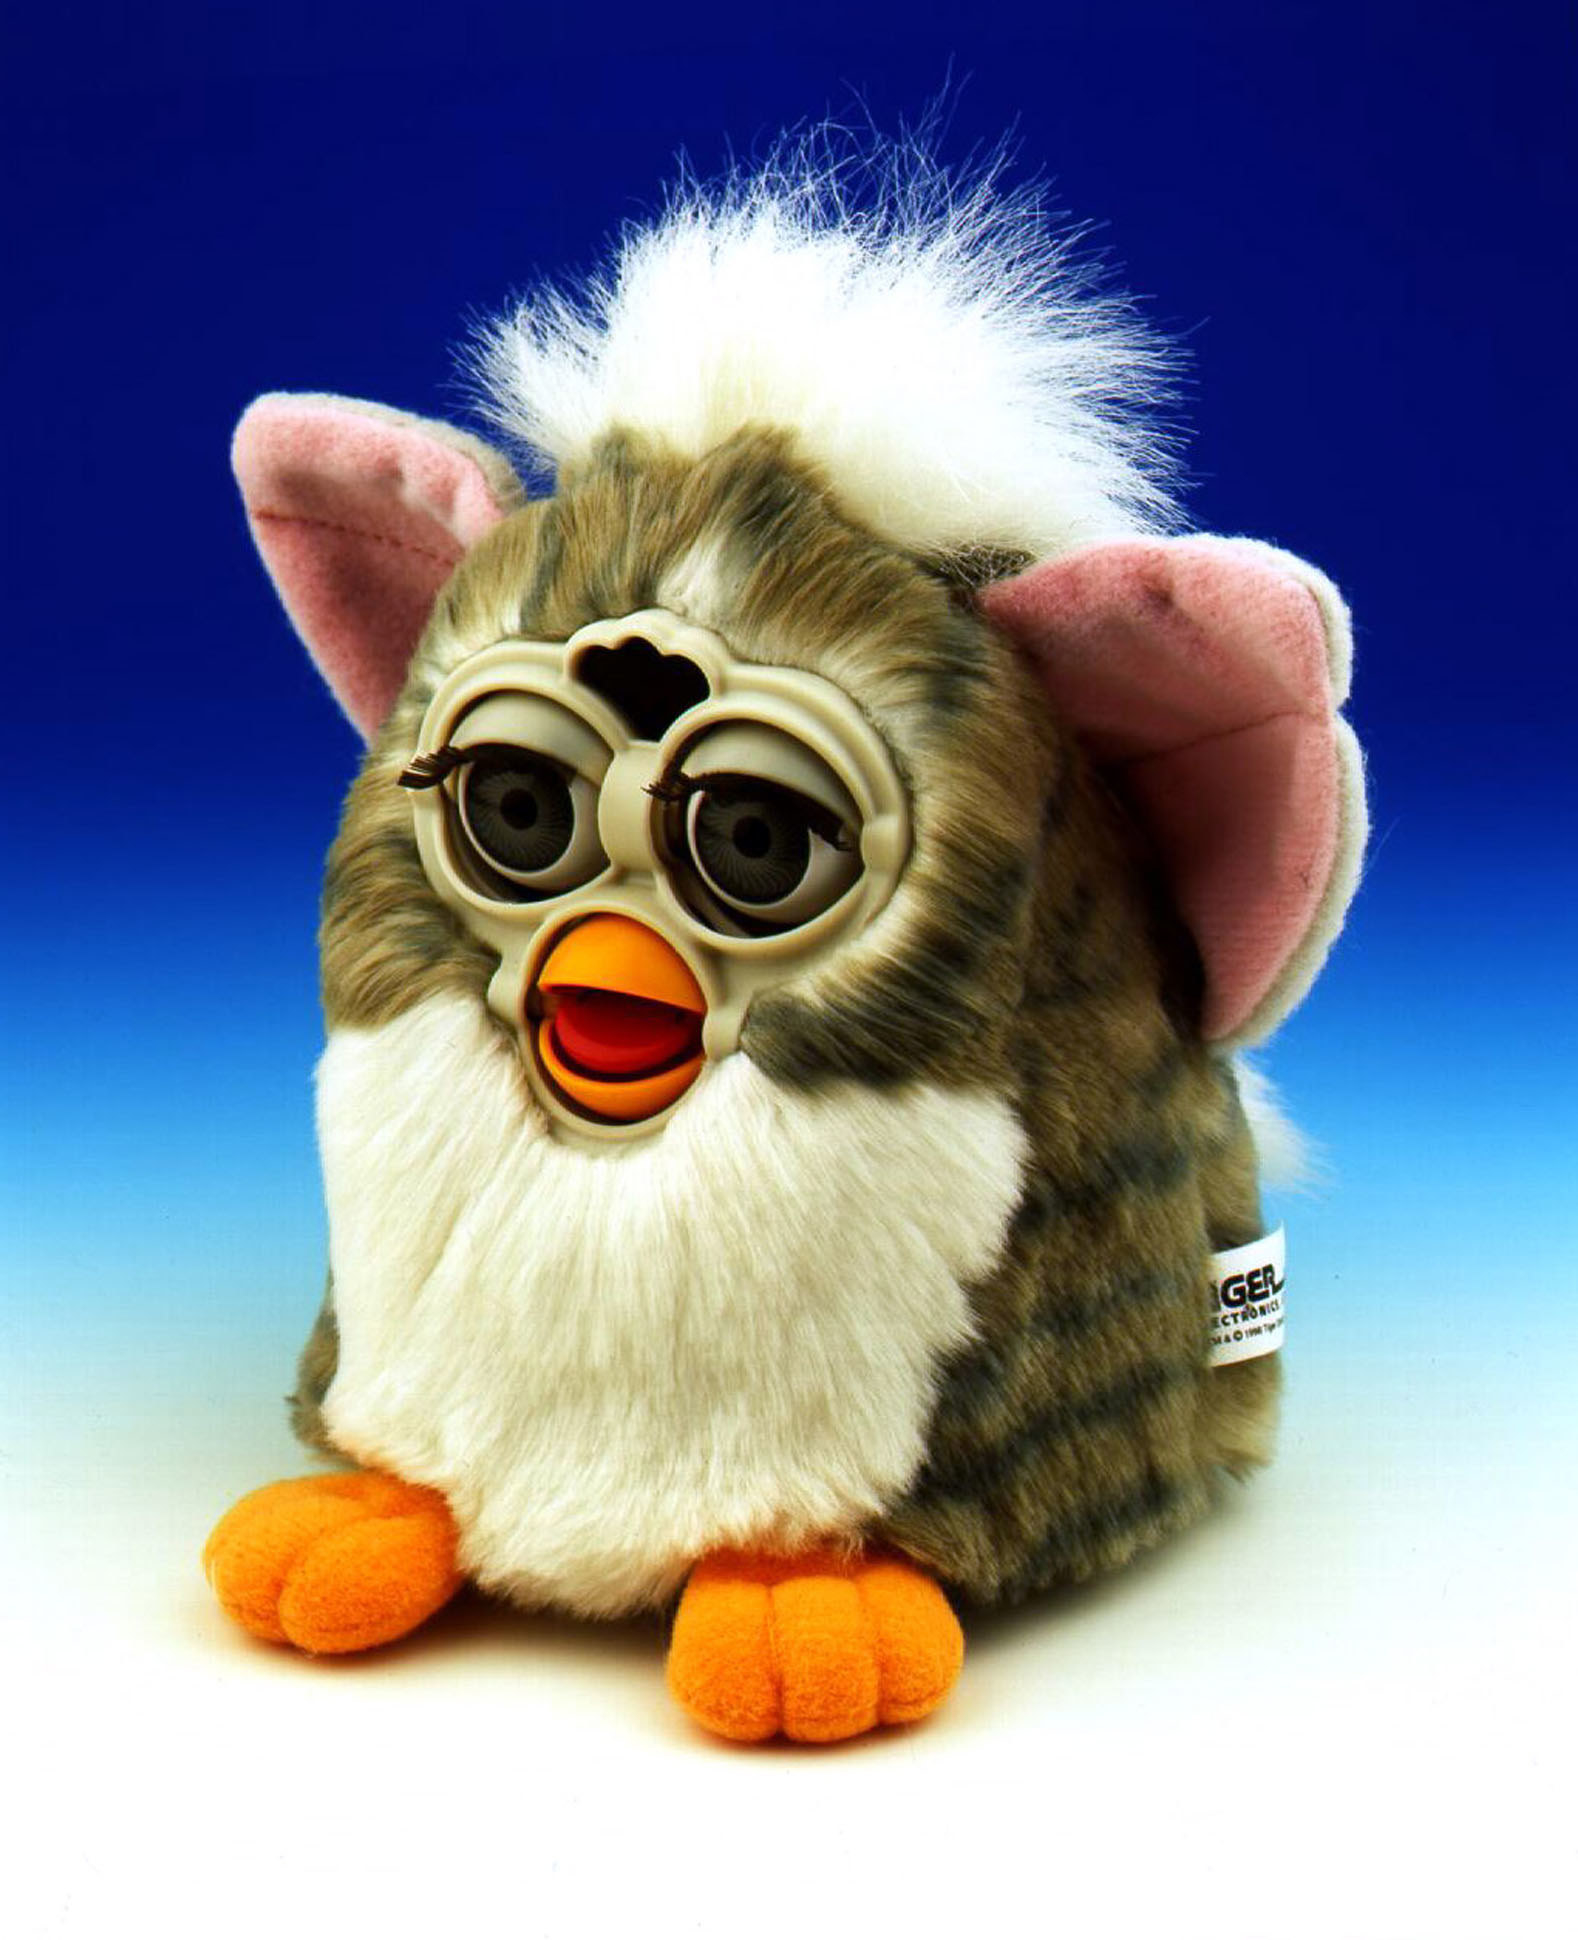 A promotional product photo of a brown and white Furby